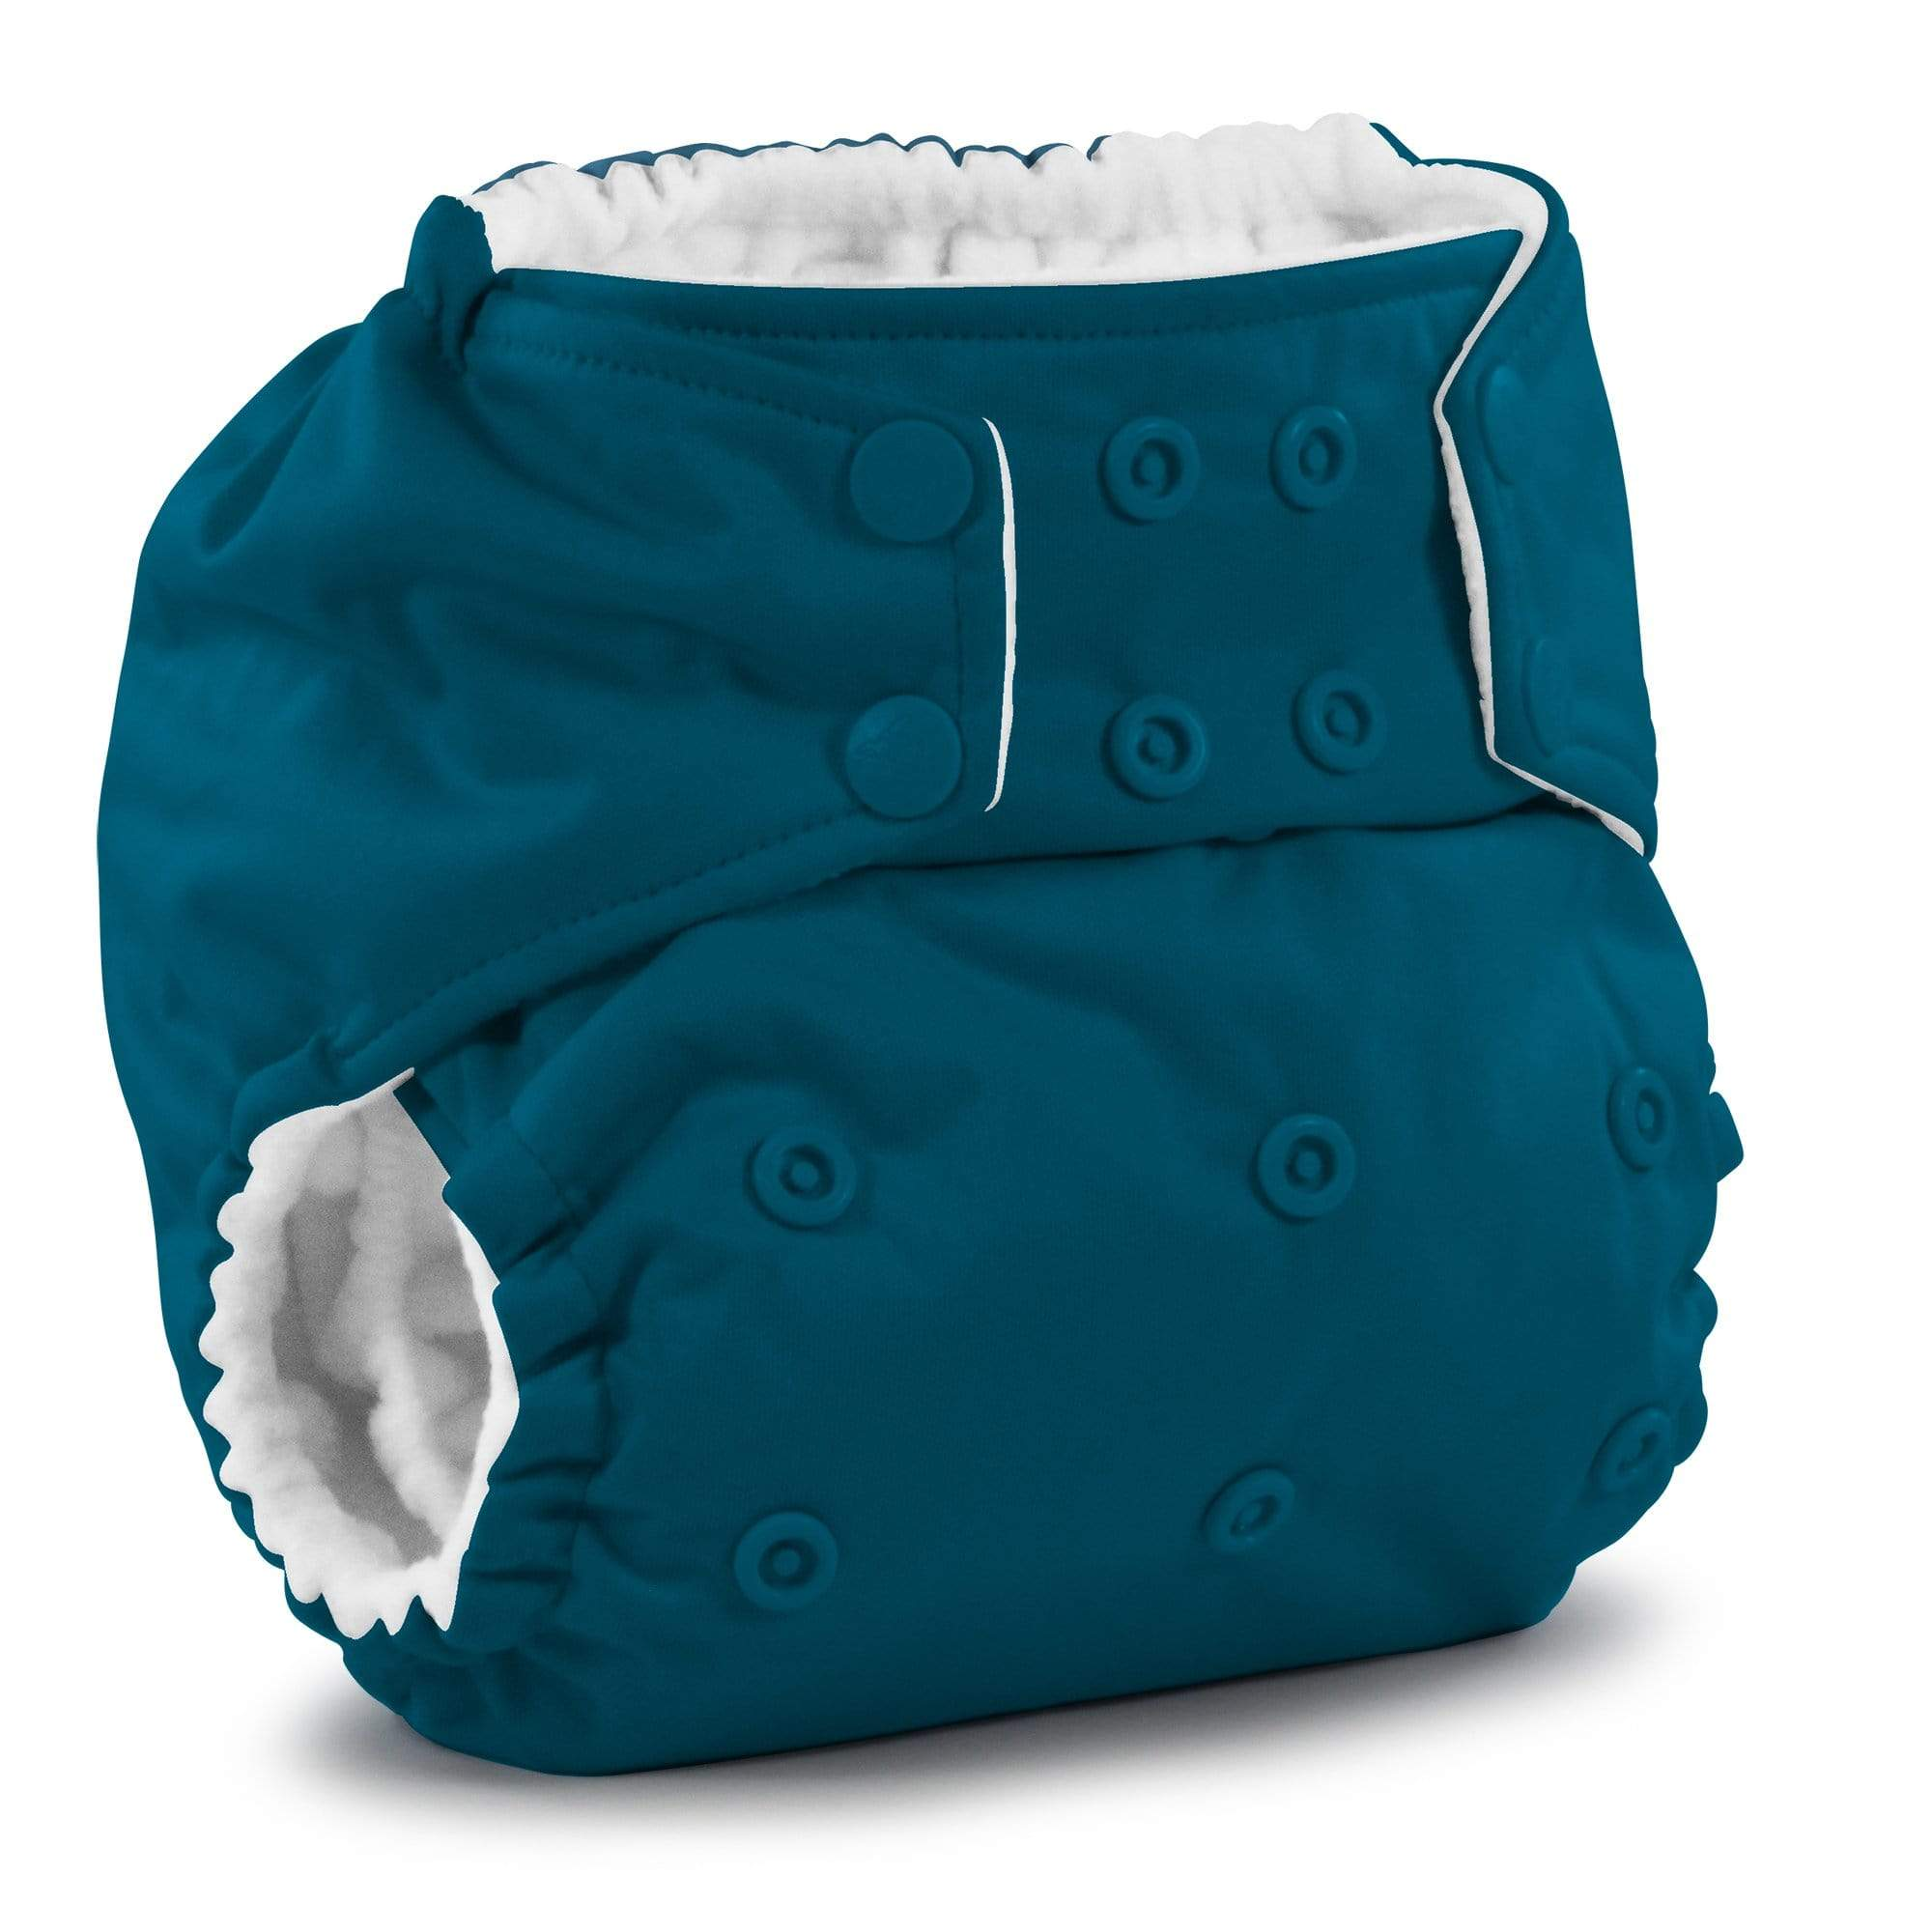 KangaCare Rumparooz One Size Pocket Diaper - Caribbean